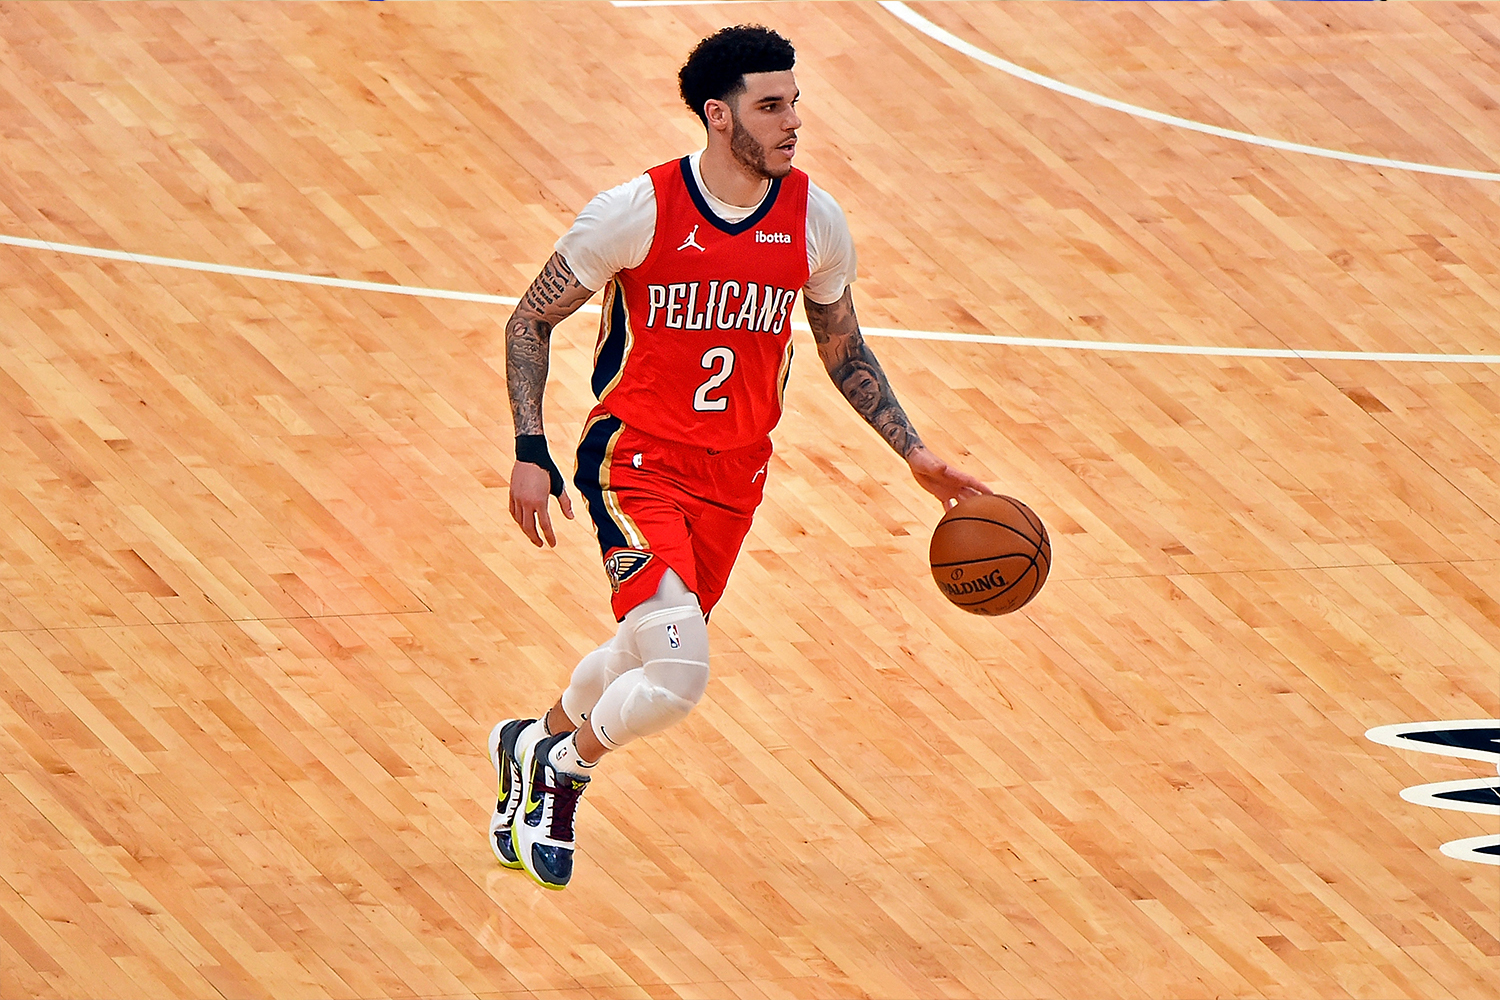 Lonzo Ball #2 of the New Orleans Pelicans brings the ball up court during the second half against the Memphis Grizzlies